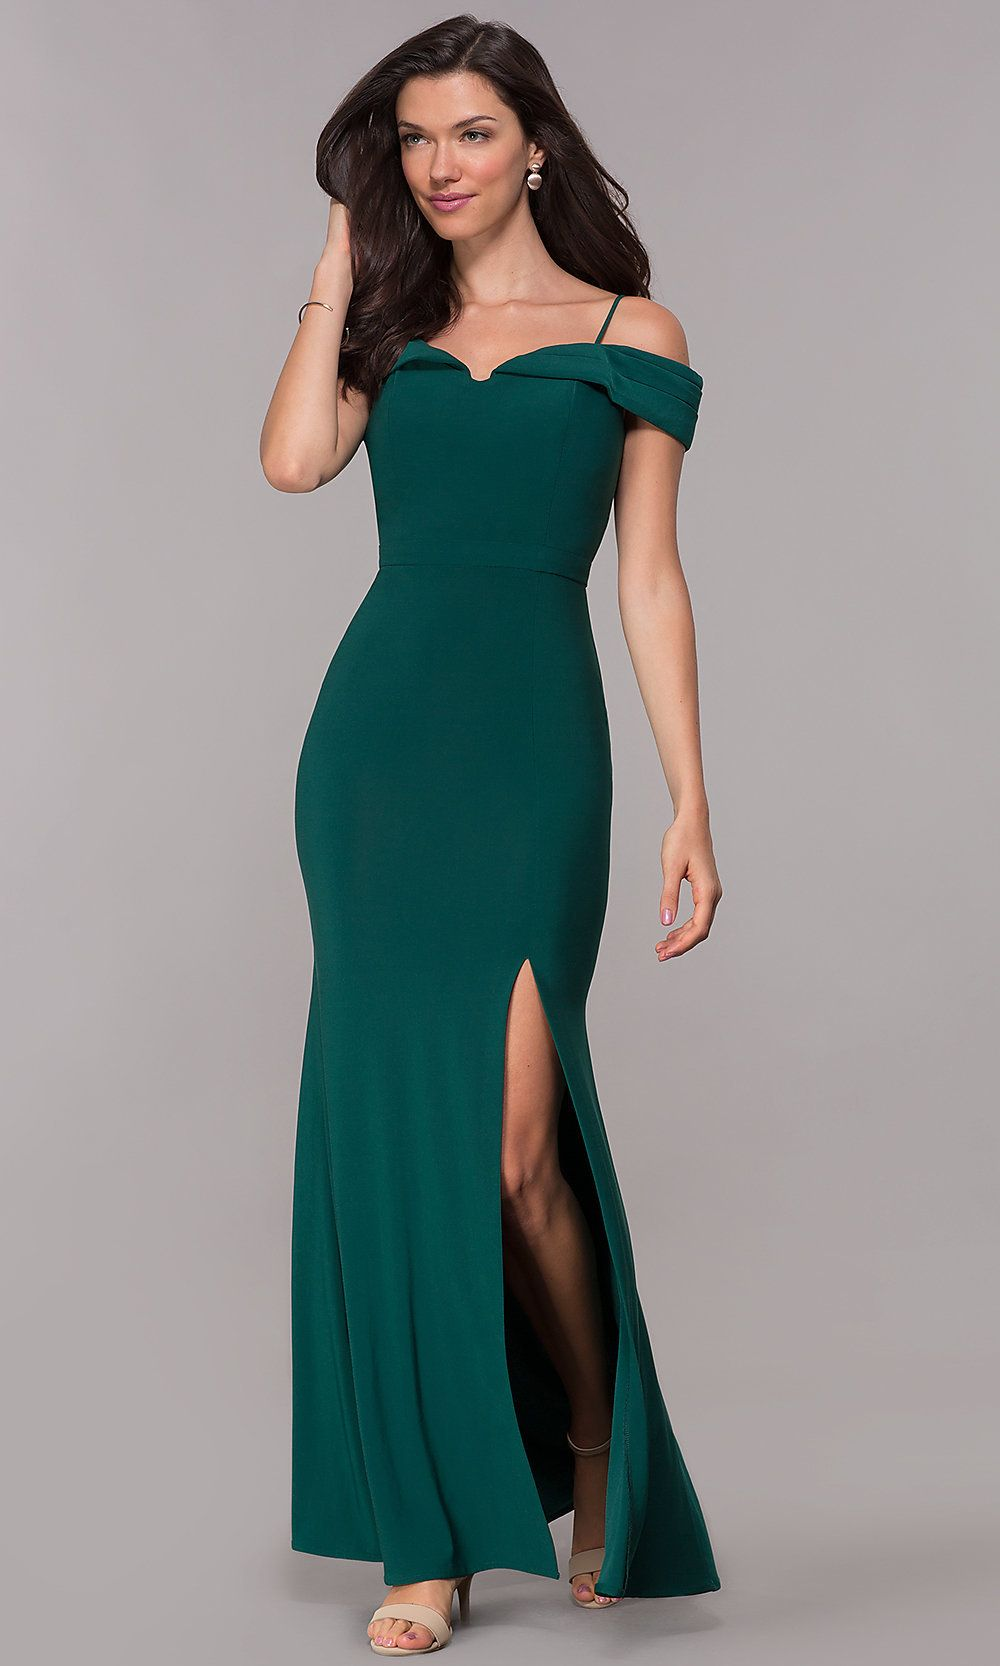 Wedding Guest Long Formal Off The Shoulder Dress Formal Wedding Guest Dress Guest Dresses Dresses To Wear To A Wedding [ 1666 x 1000 Pixel ]